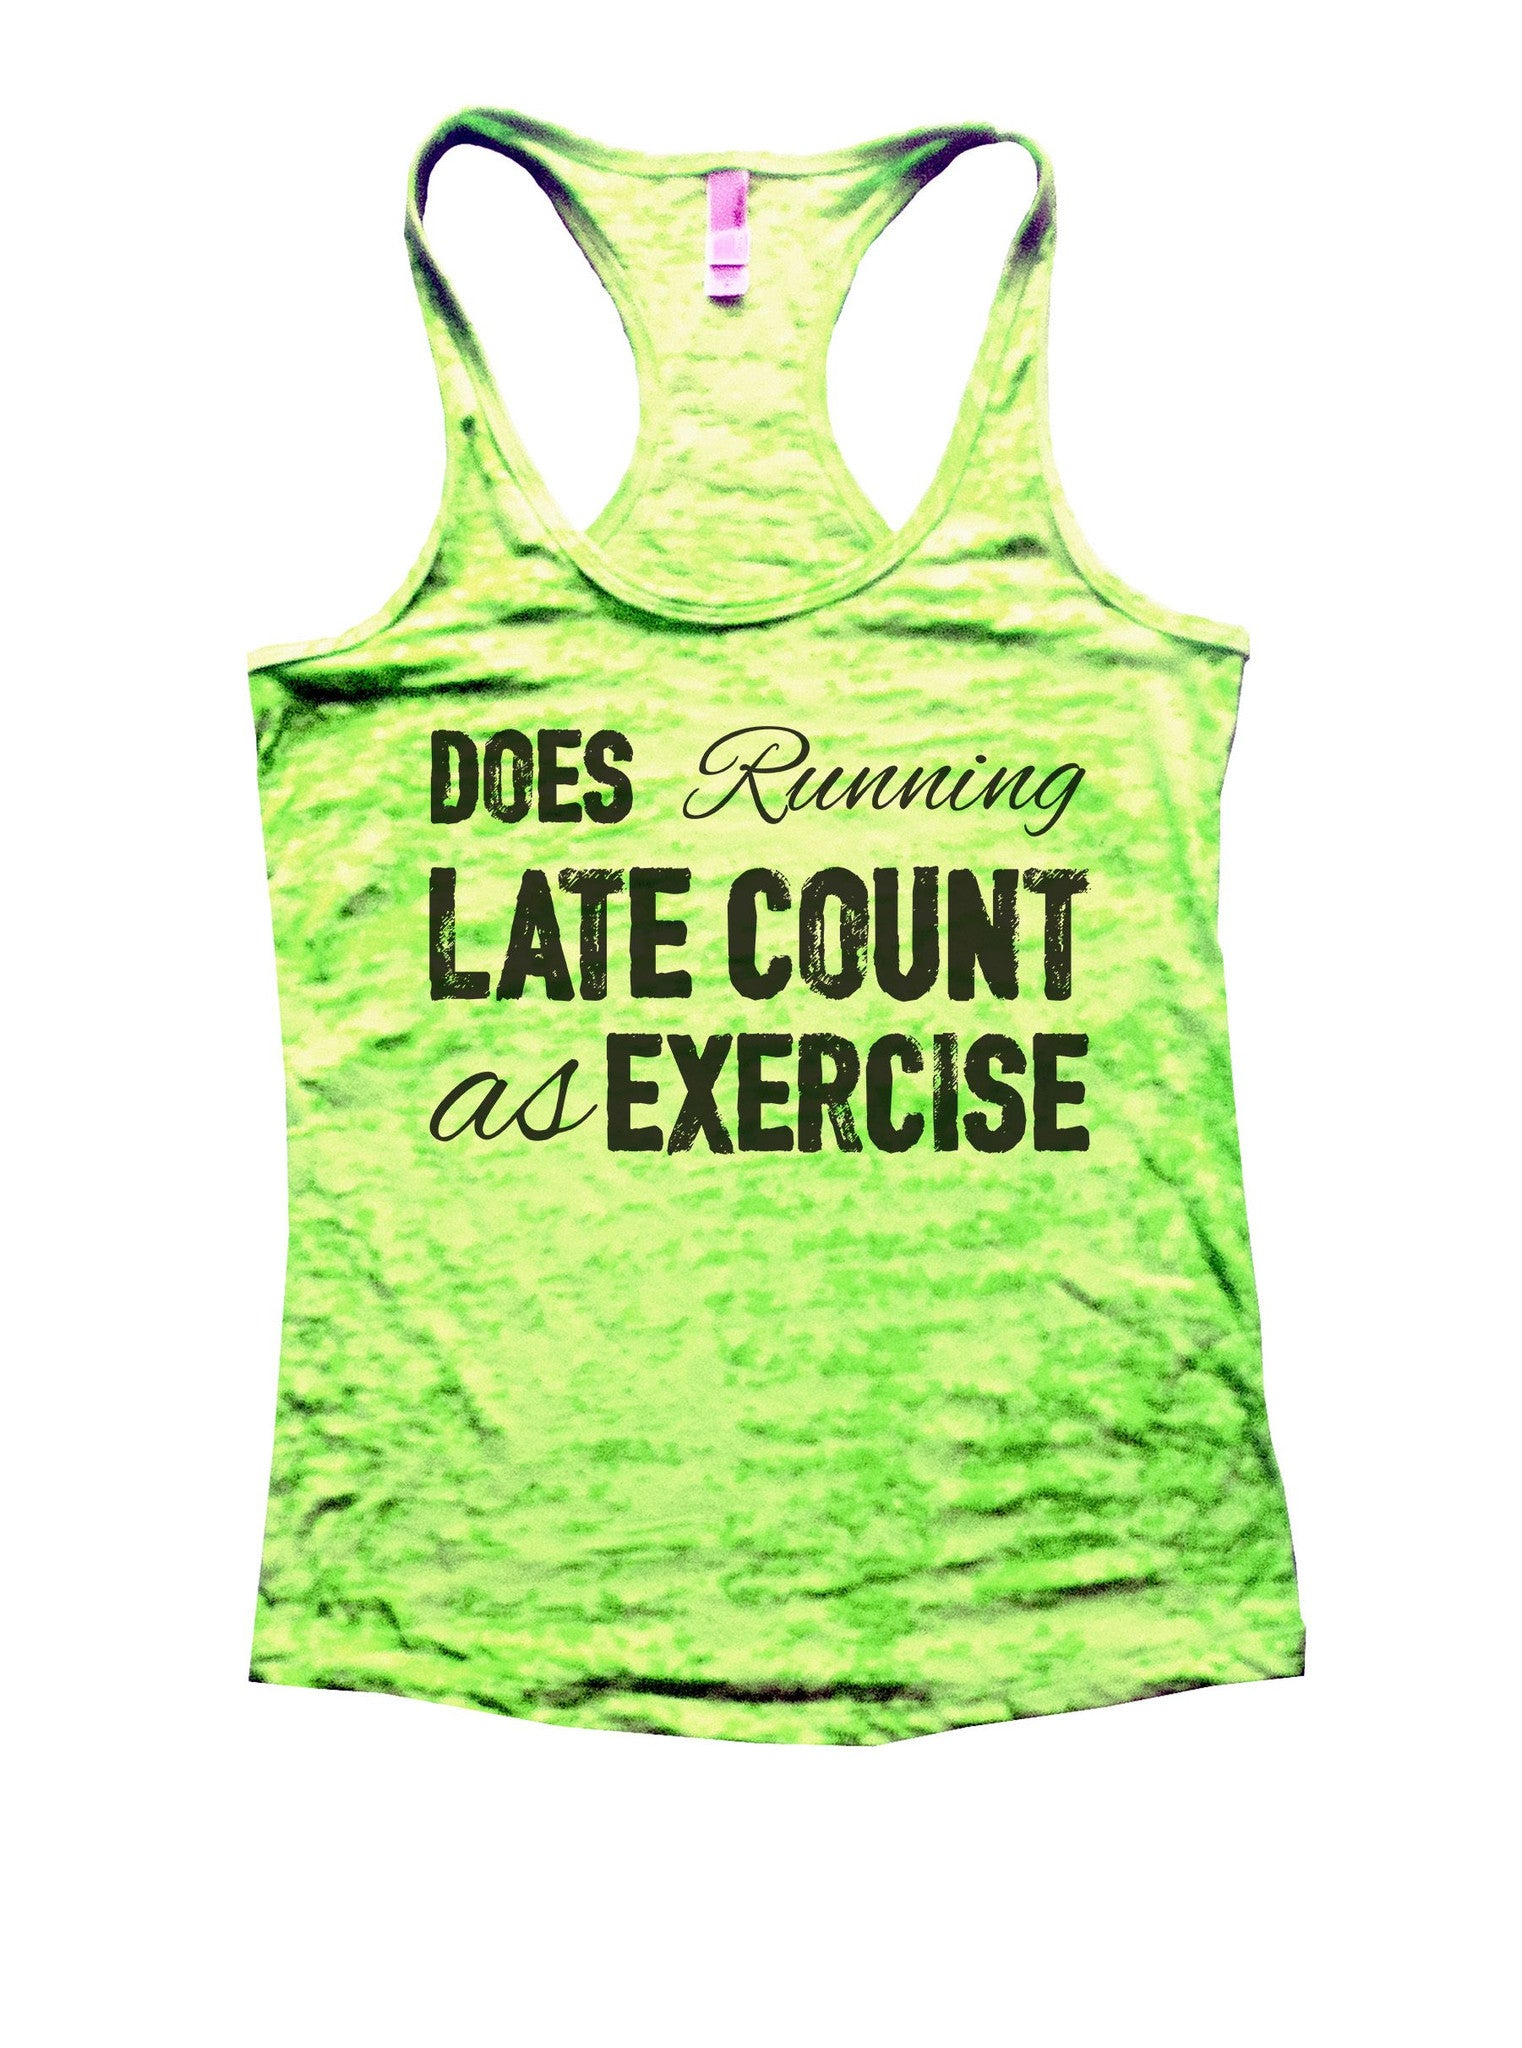 Does Running Late Count As Exercise Burnout Tank Top By BurnoutTankTops.com - 805 - Funny Shirts Tank Tops Burnouts and Triblends  - 2